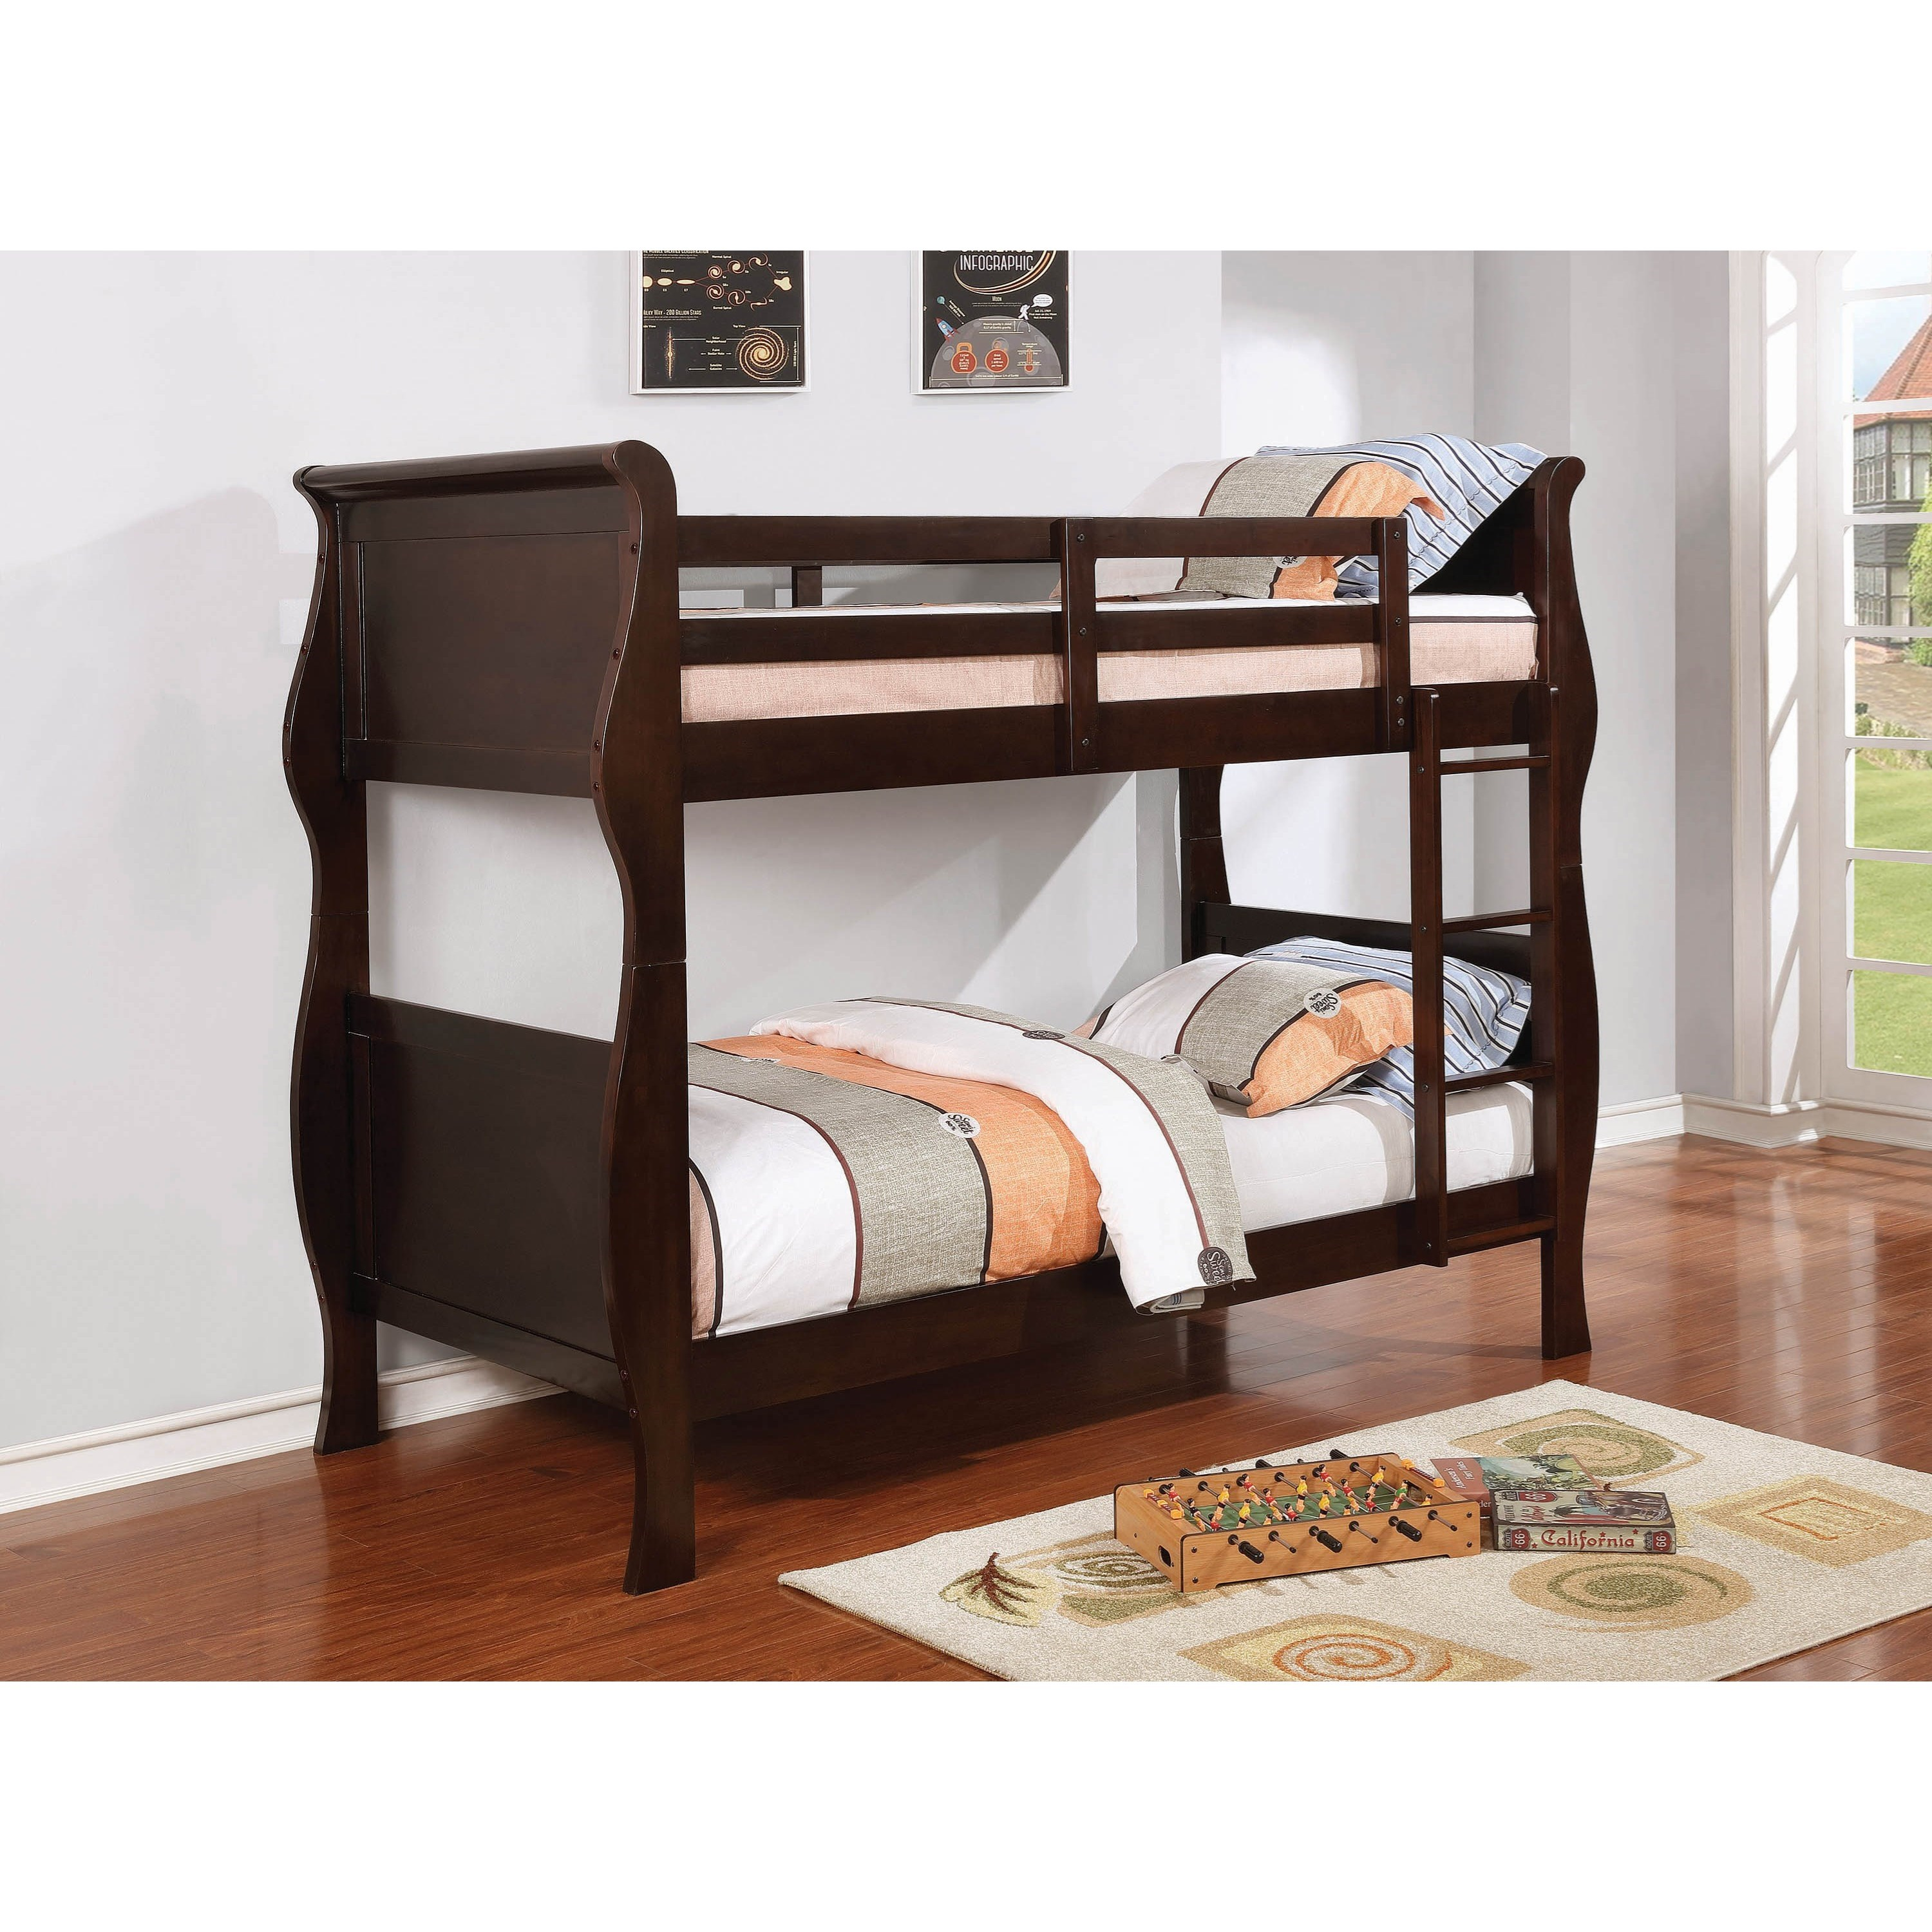 Benson Bunk Bed by Coaster at Northeast Factory Direct